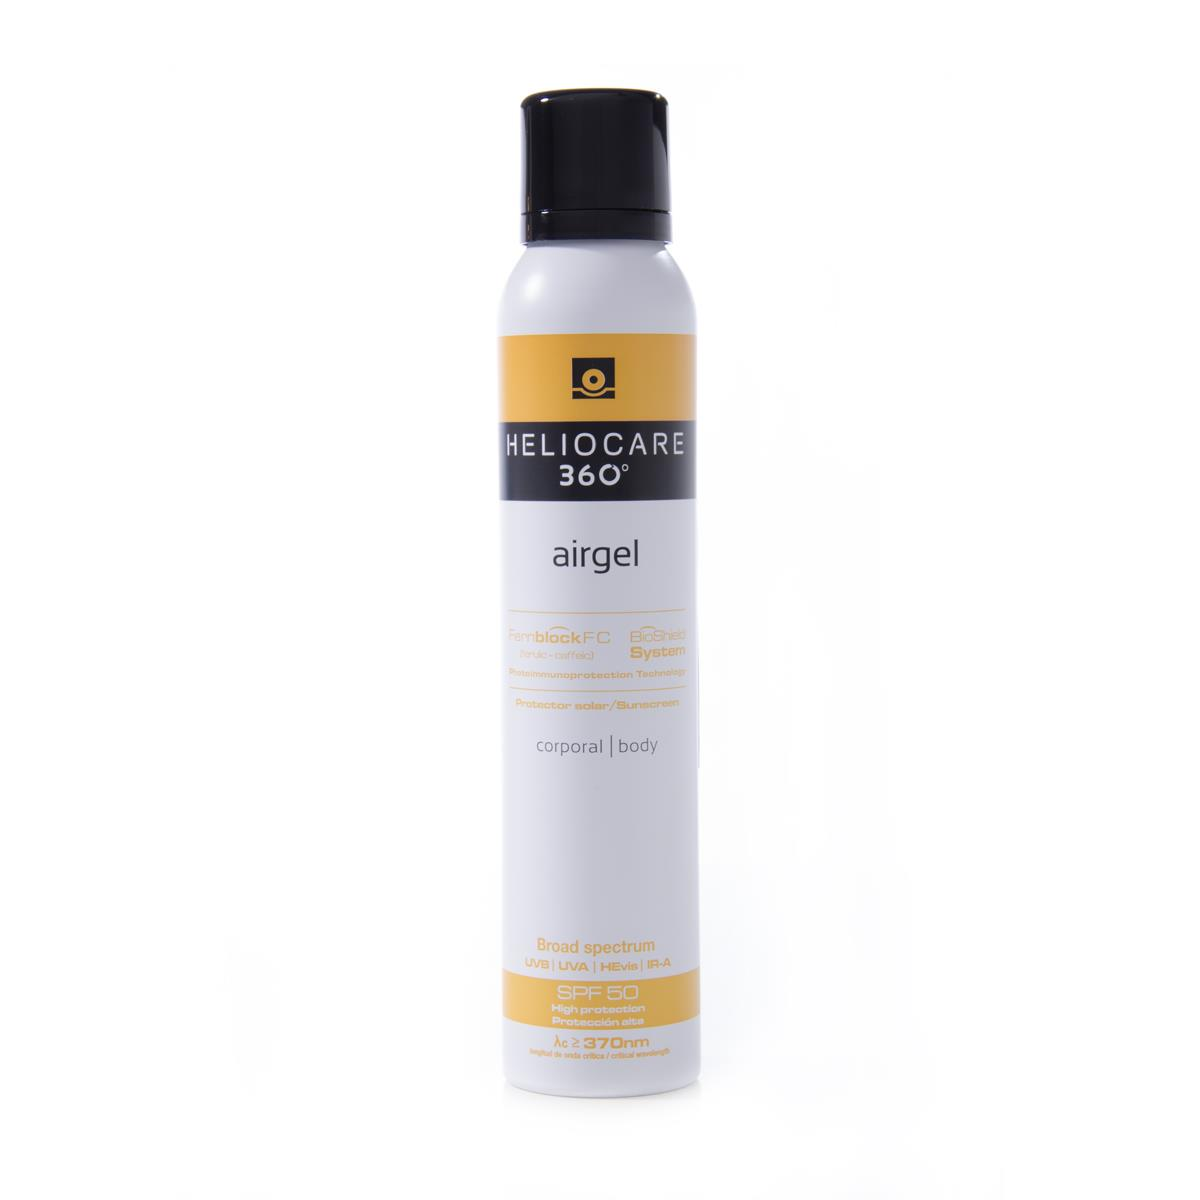 Heliocare 360 Fps 50+ Airgel Corporal 200 Ml